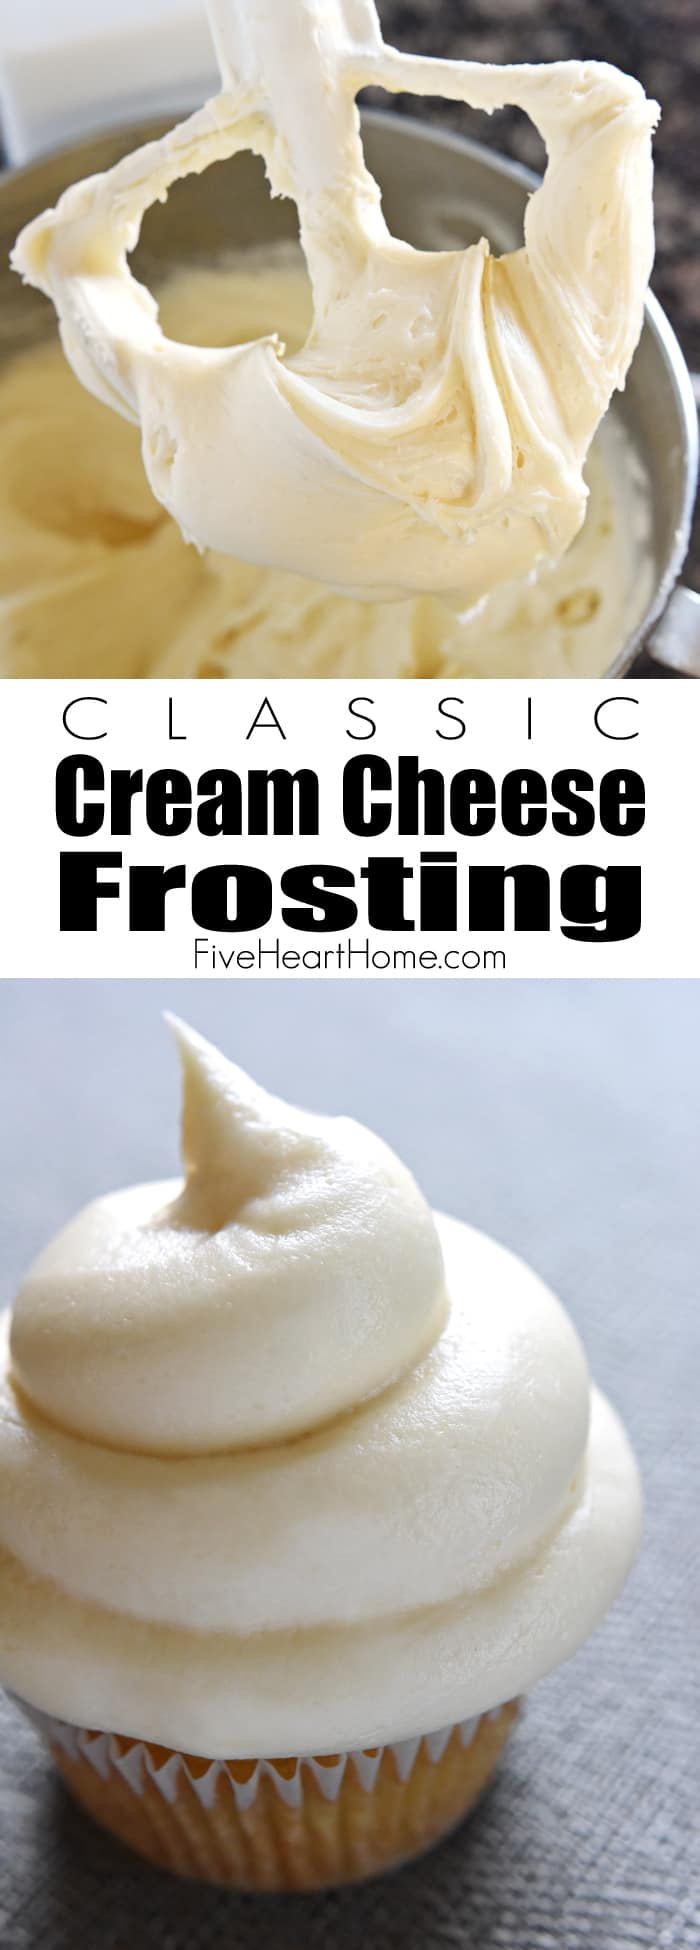 Classic Cream Cheese Frosting ~ silky and sweet with a slight tang from the cream cheese, this effo